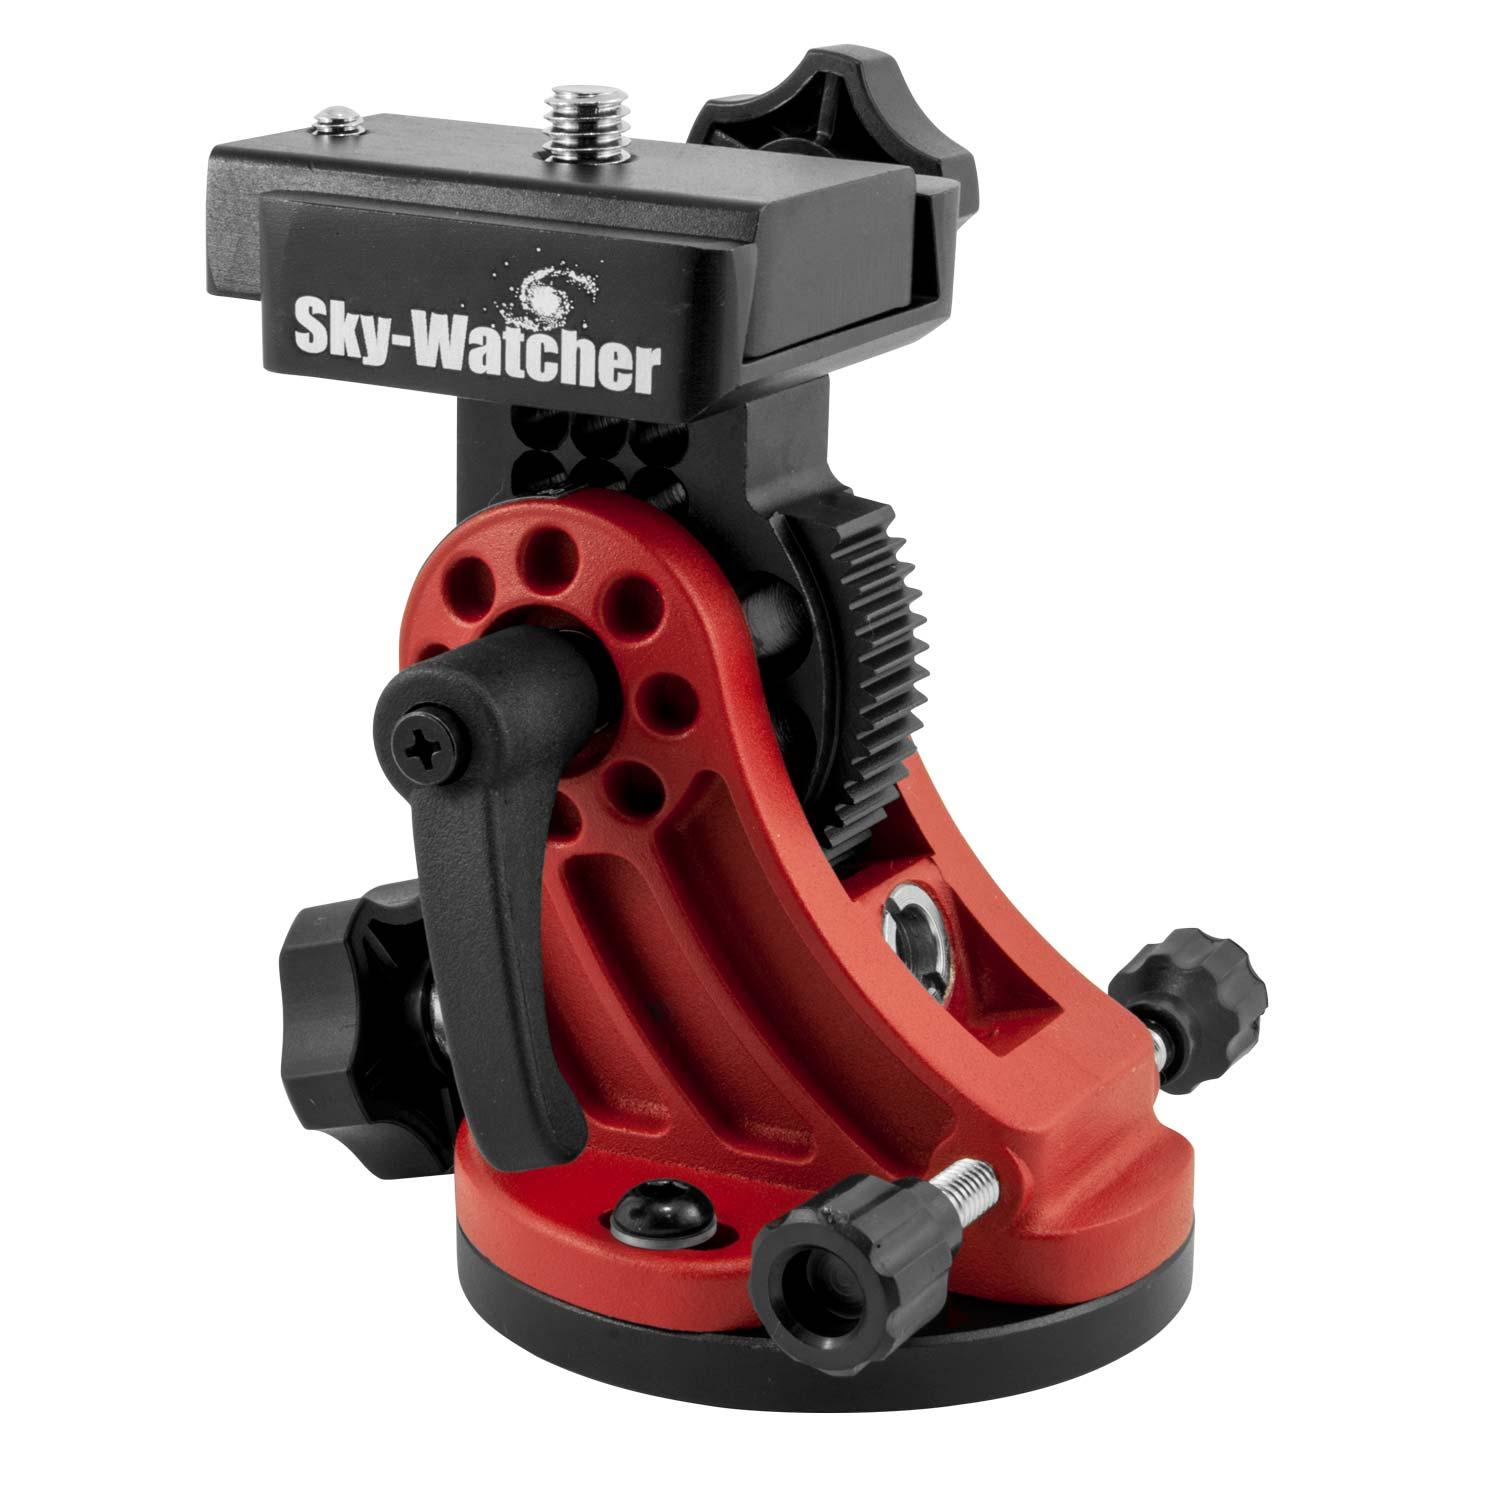 swminisa-wedge-r-skywatcher-wedge-mini-star-adventurer-wi-fi-red